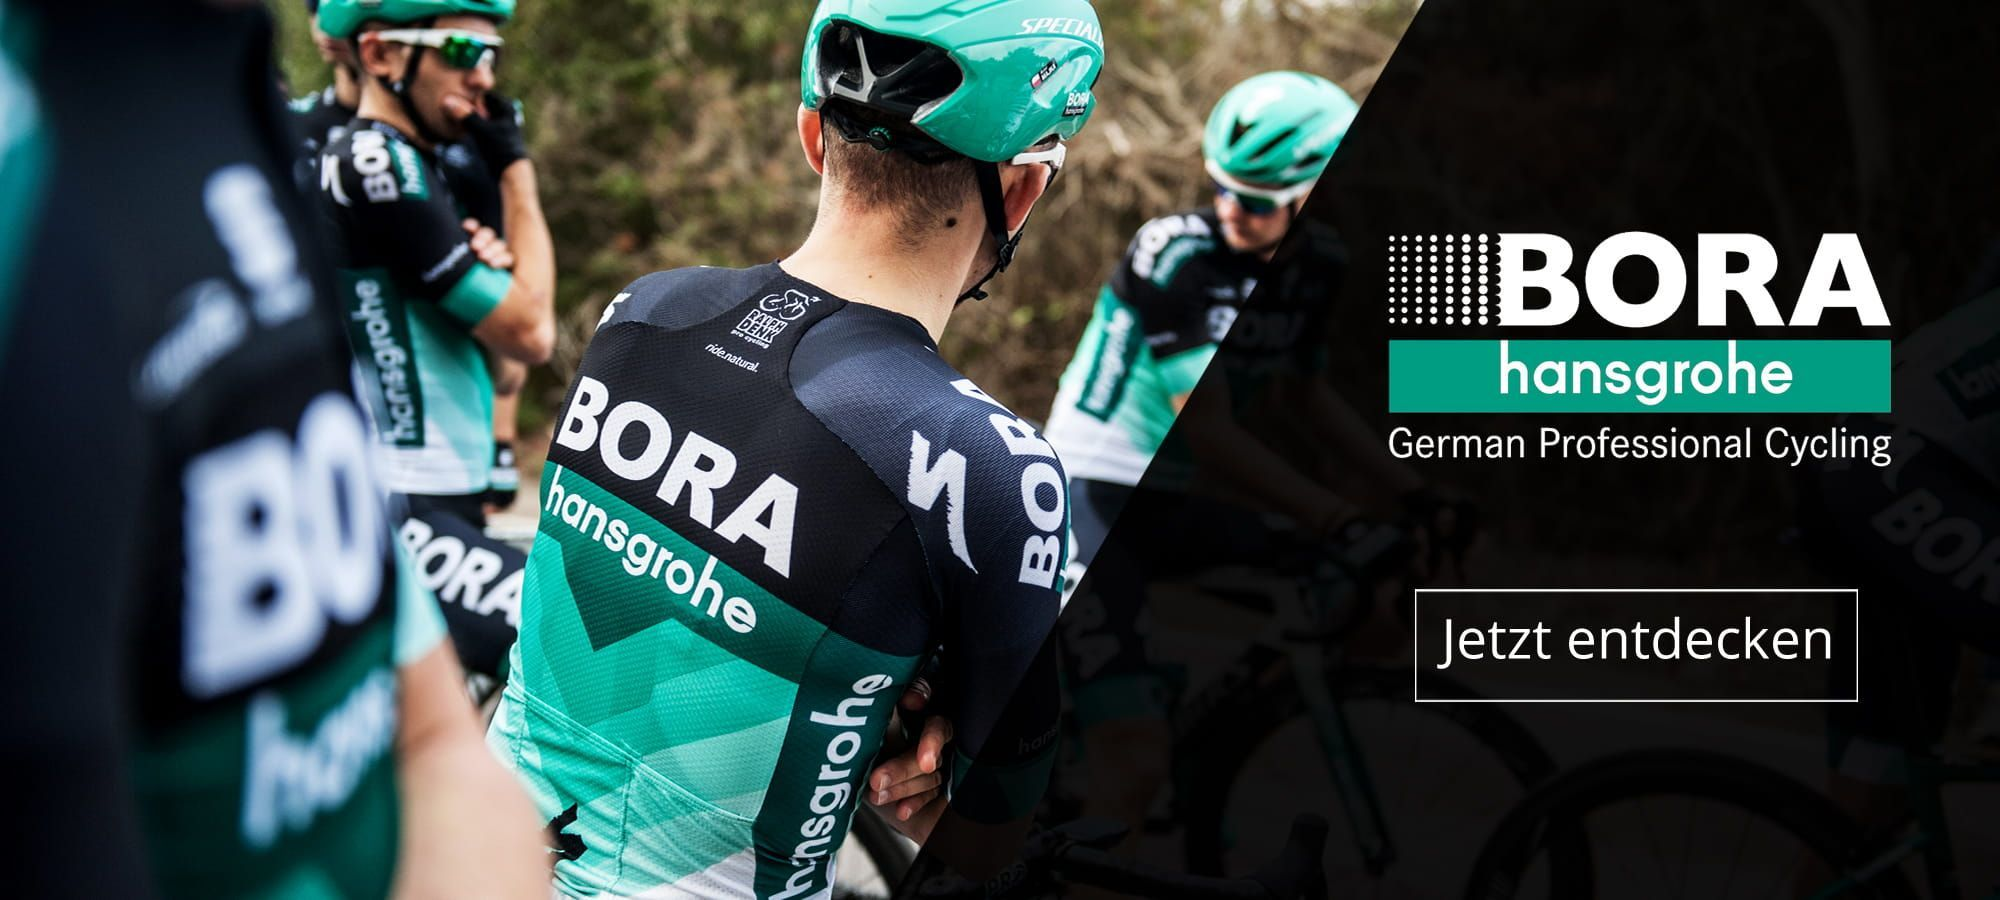 Bora Hansgrohe 2018 - German professional cycling team